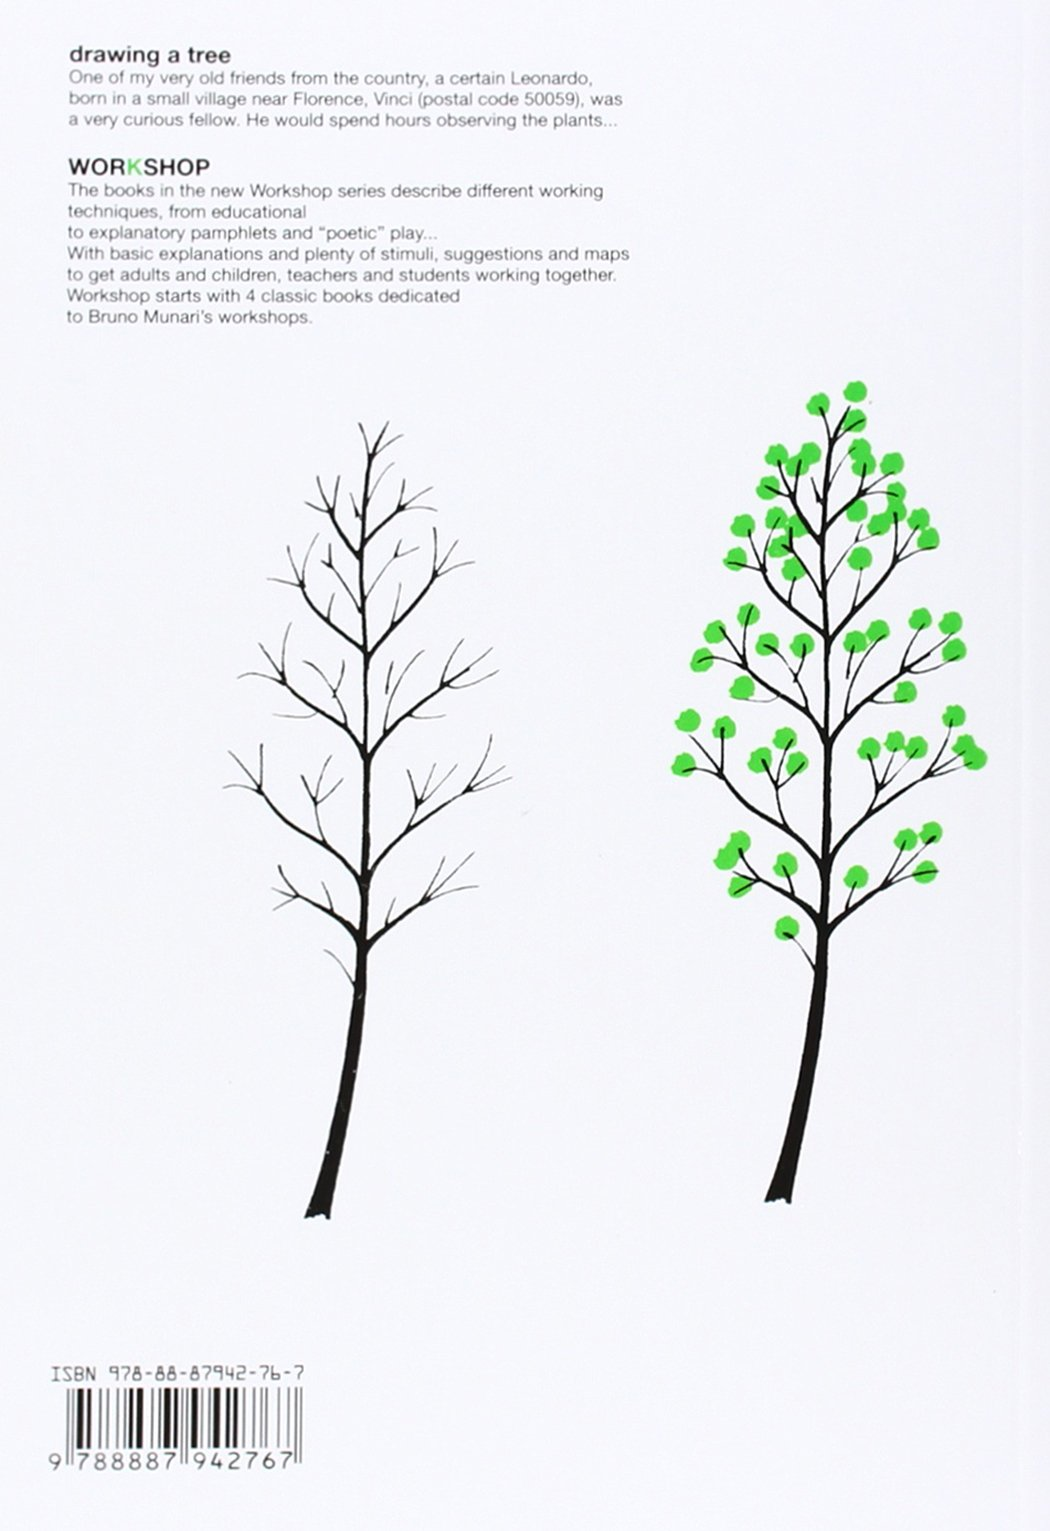 bruno munari drawing a tree about the workshop series bruno